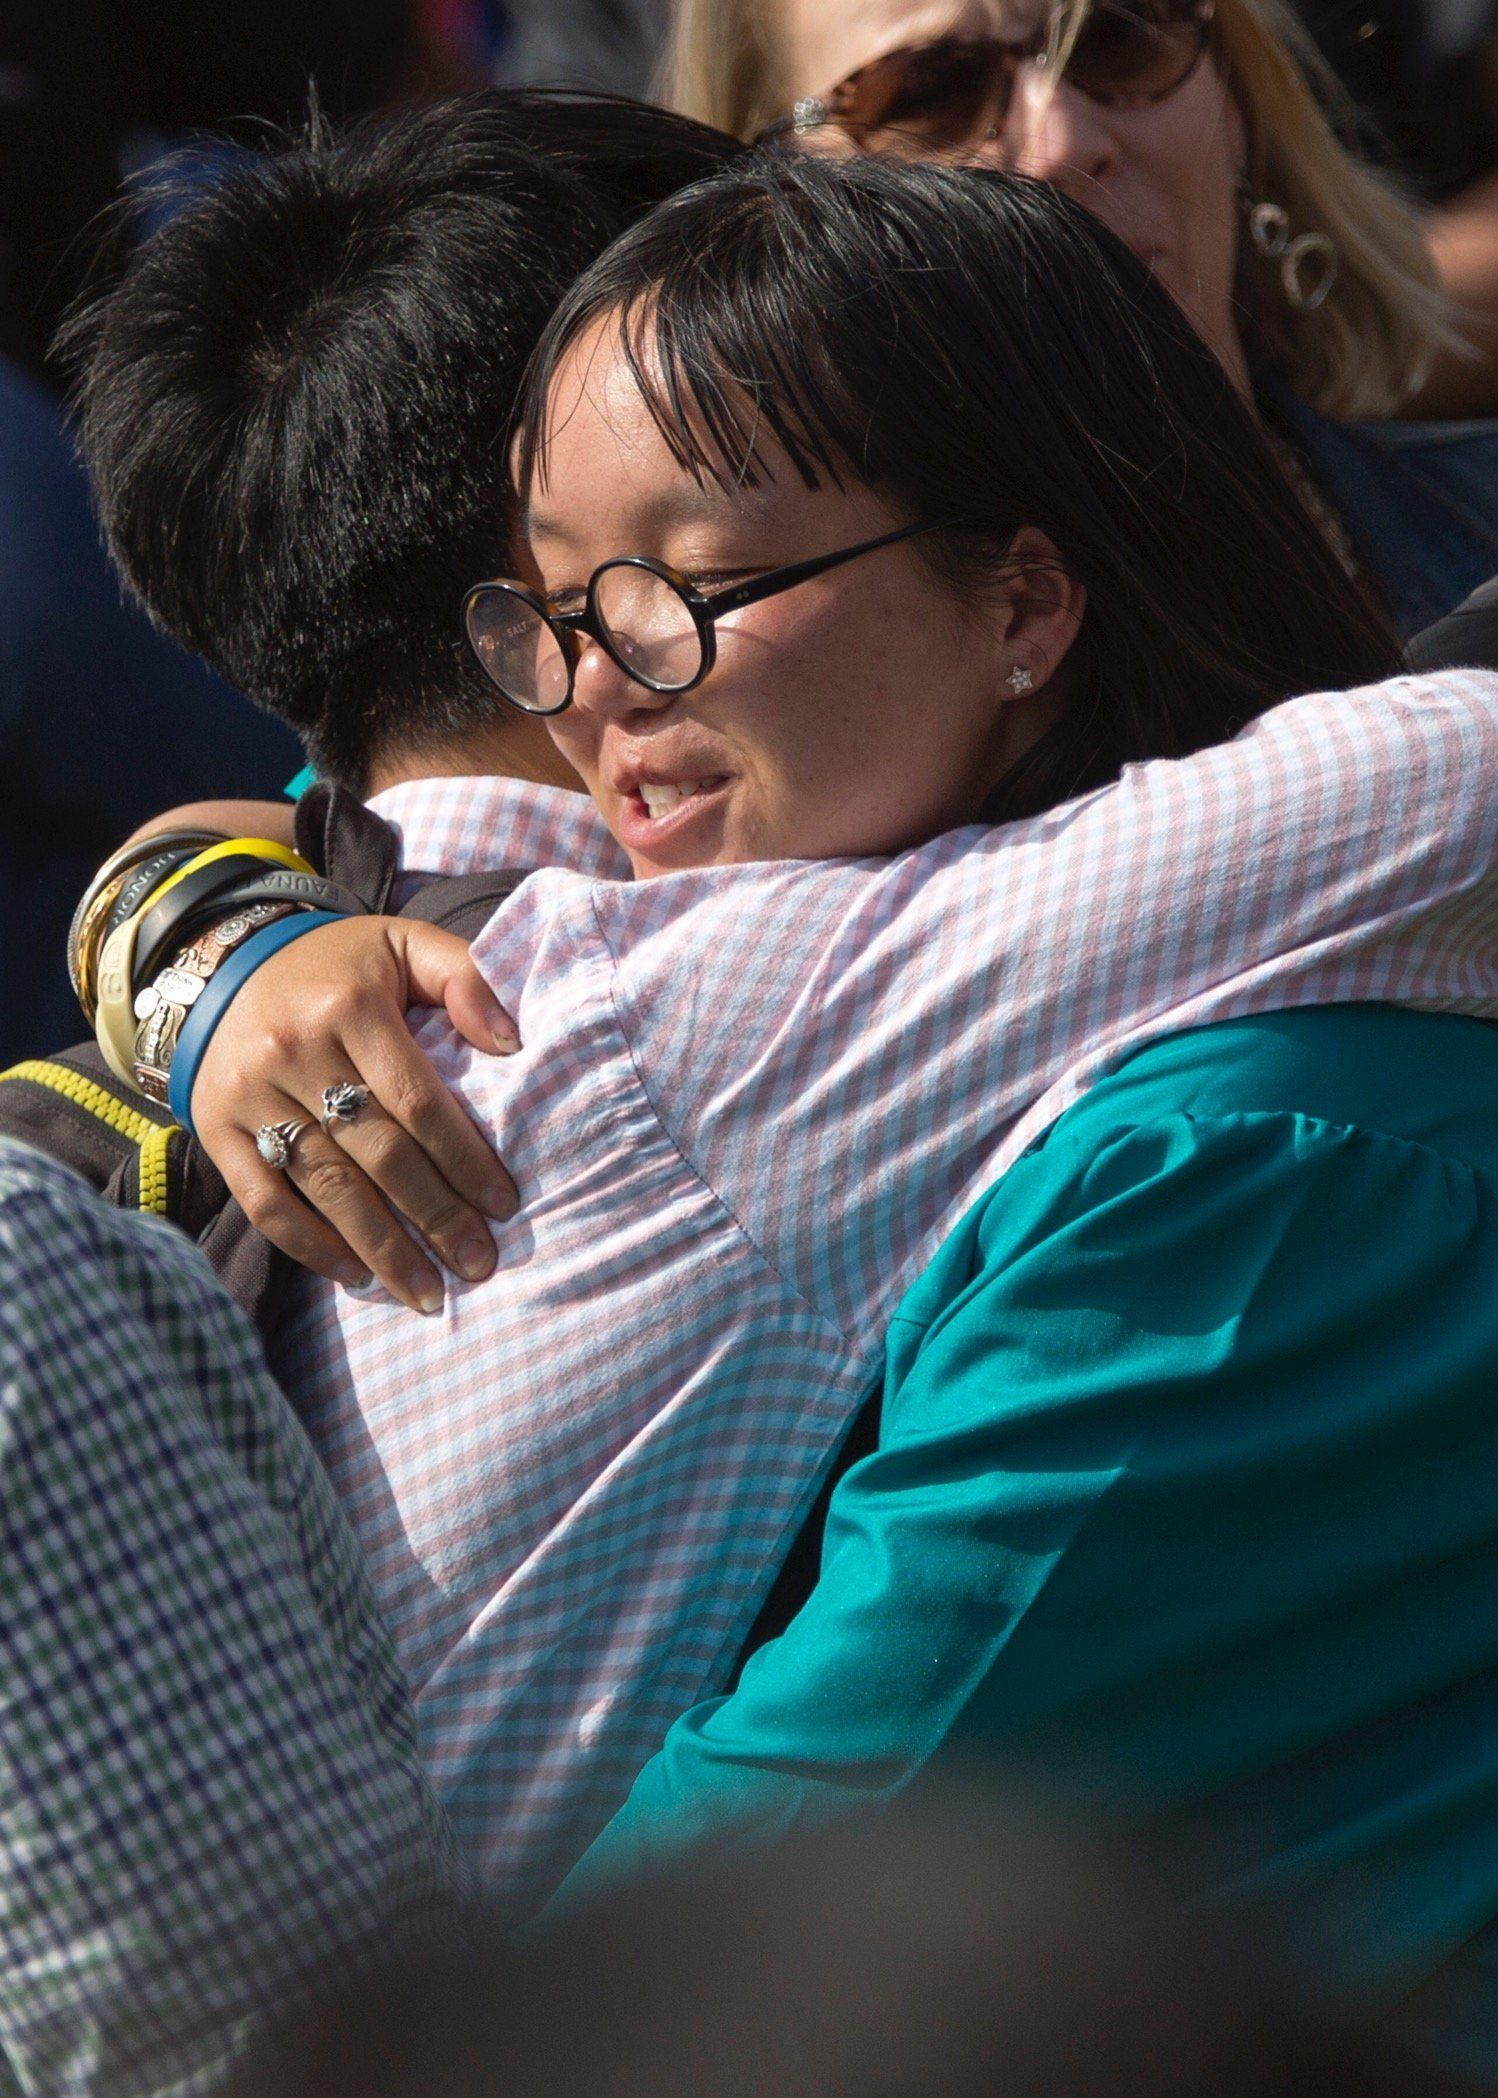 The author's children hugging one another at her daughter's recent graduation.